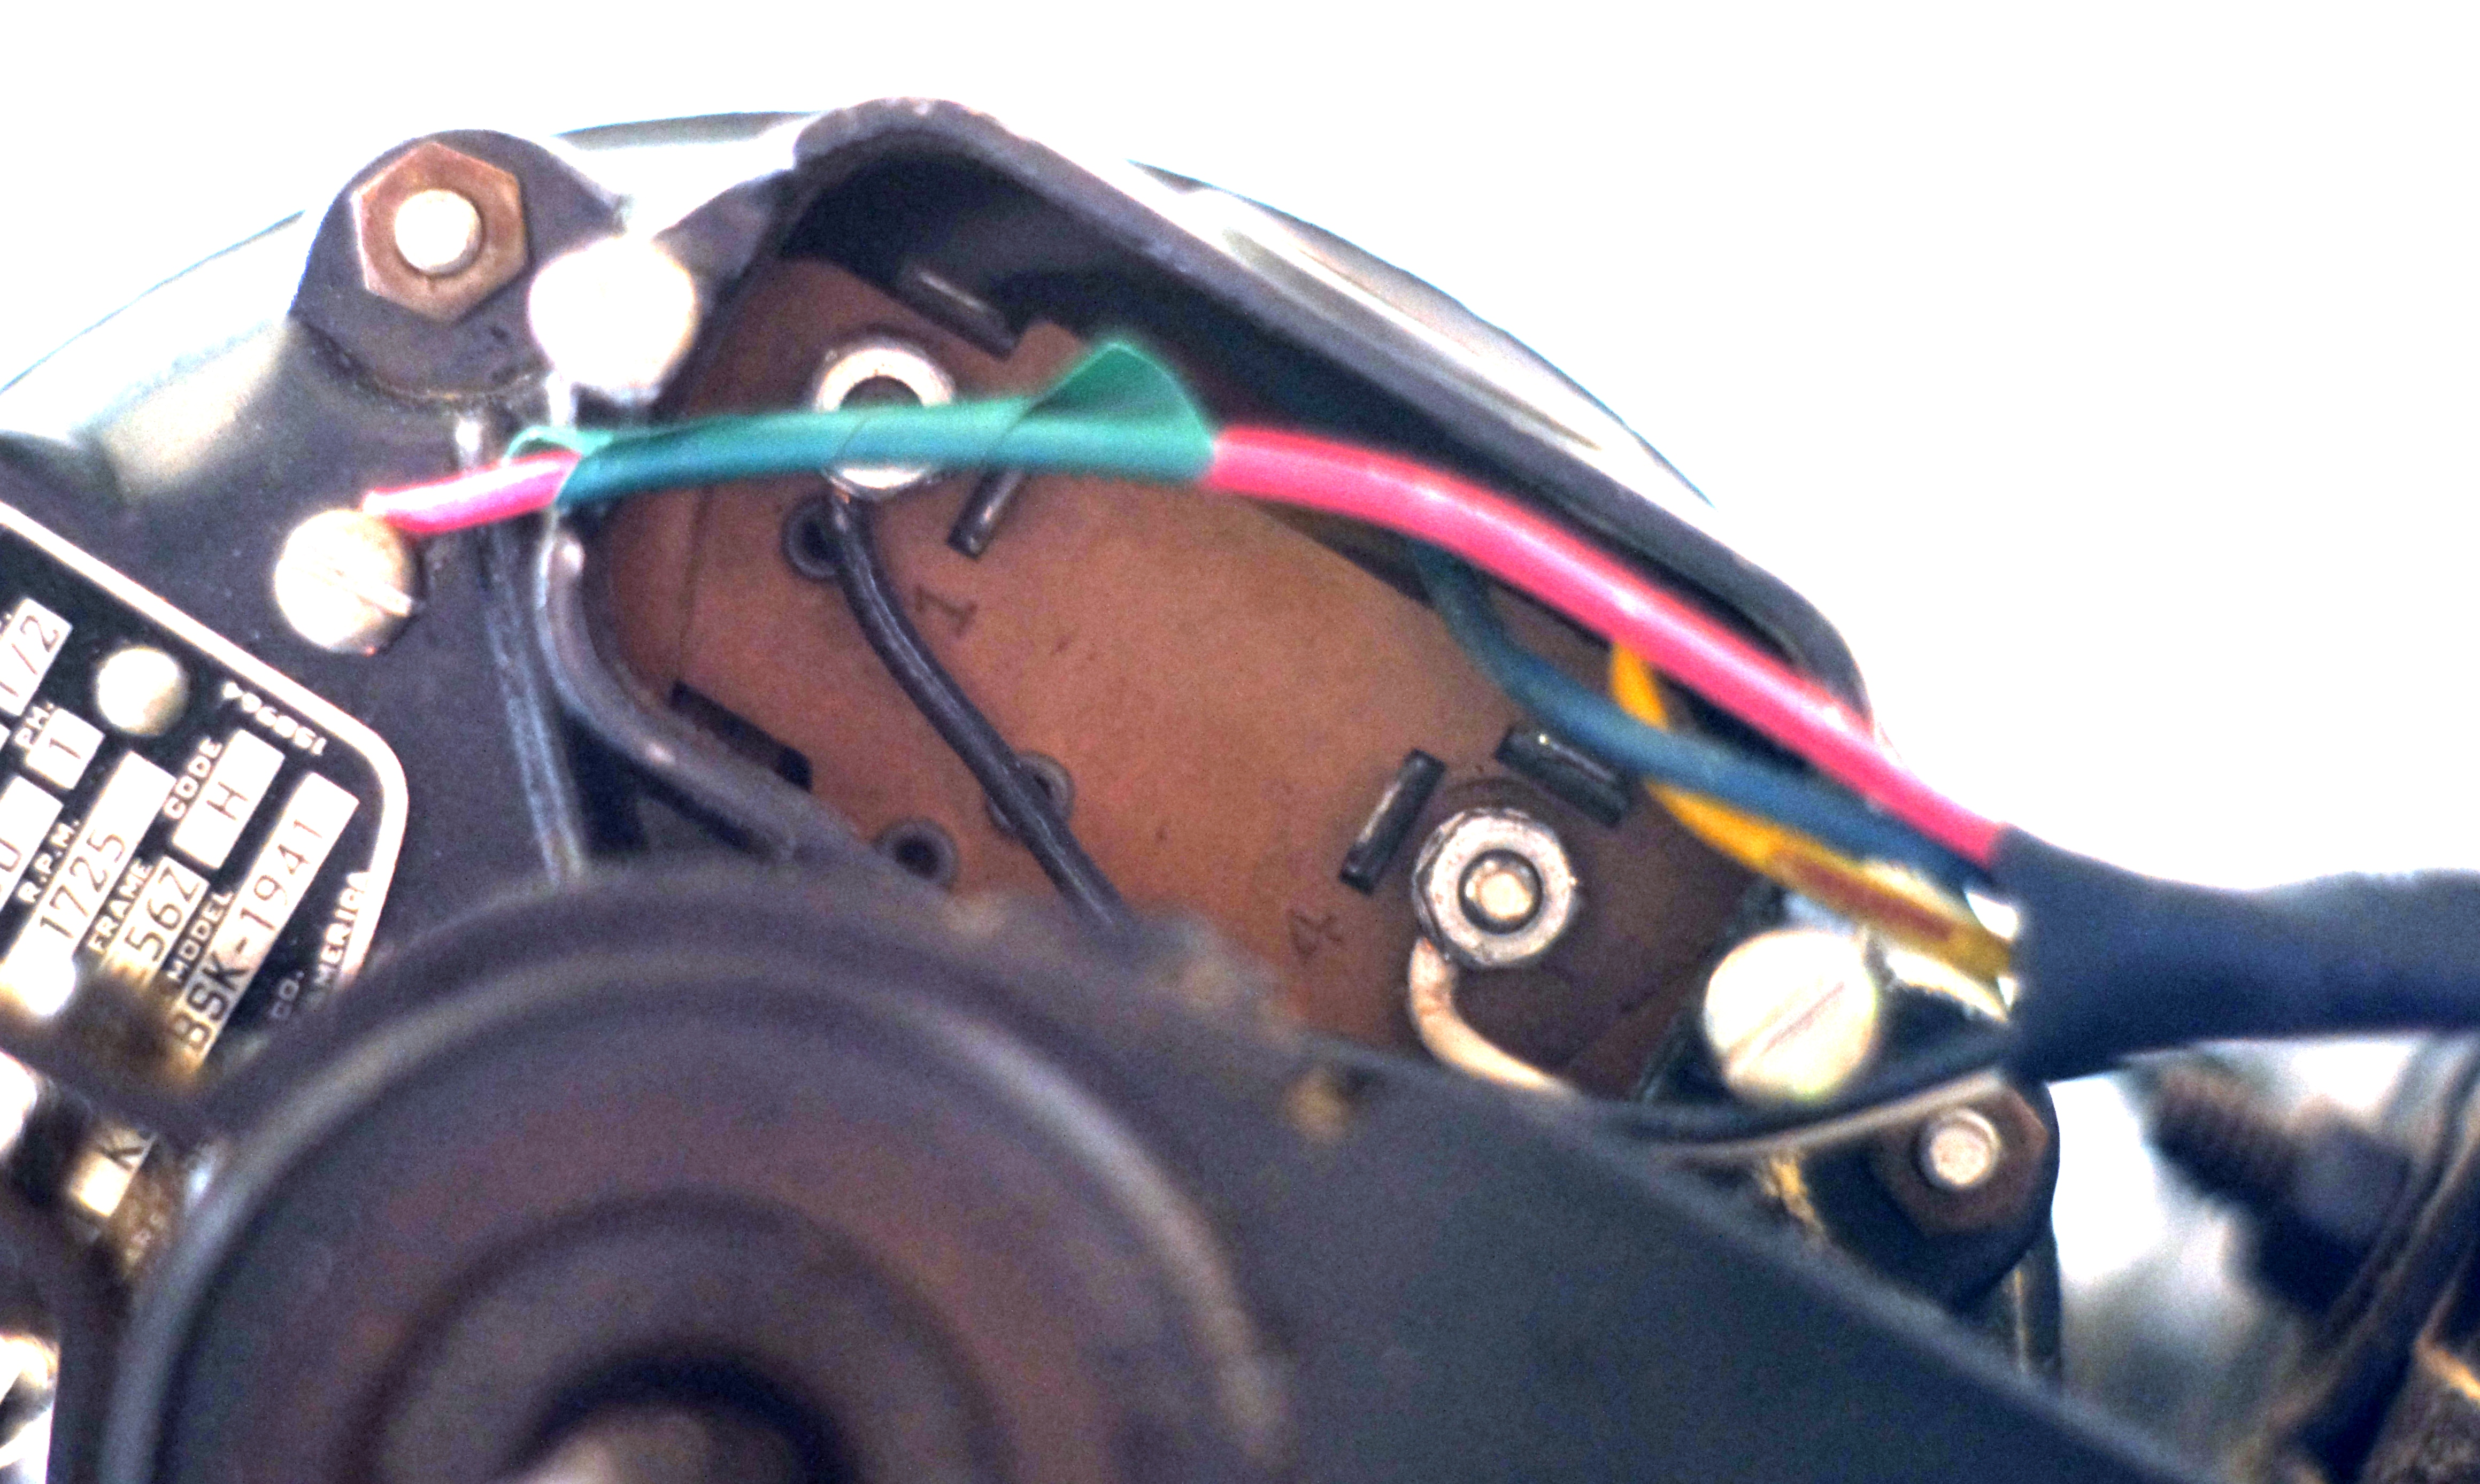 Need Help Wiring A 60 Amp Drum Switch Forward Off Reverse Drill Reversing Diagram Setting Up The 2014 10 18 182922 Dsc03502